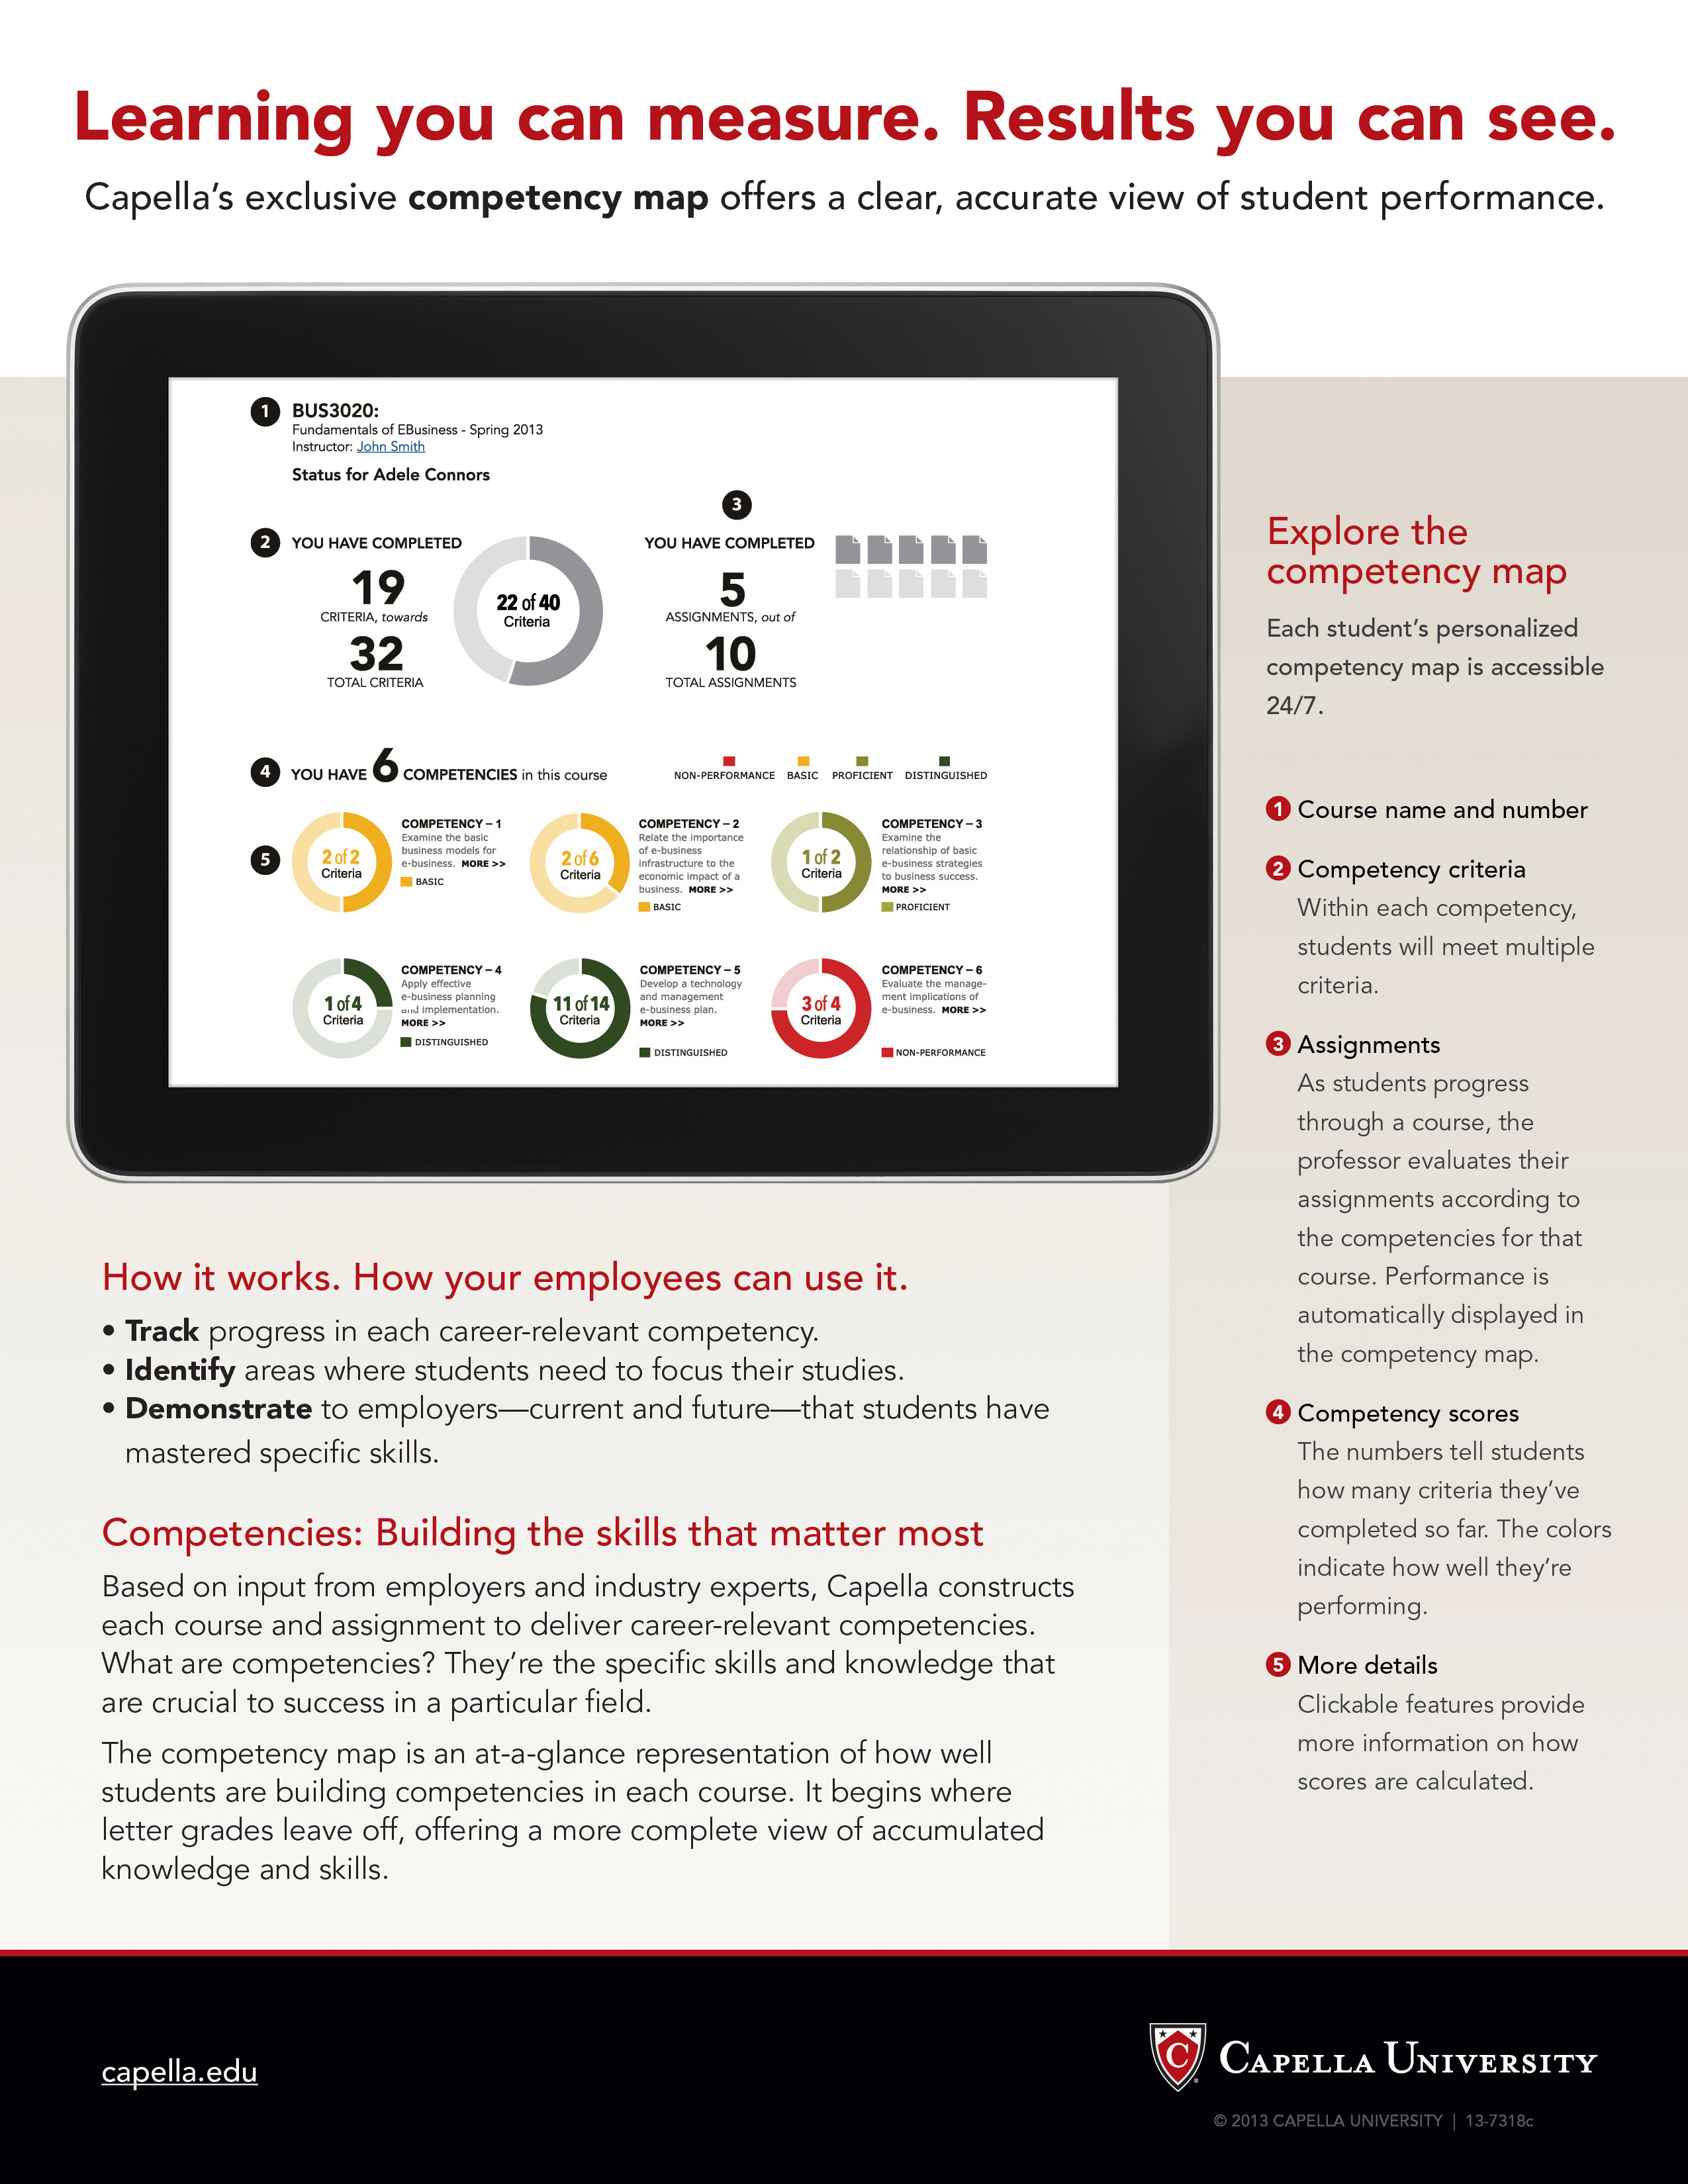 Capella University Launches Innovative Competency Map